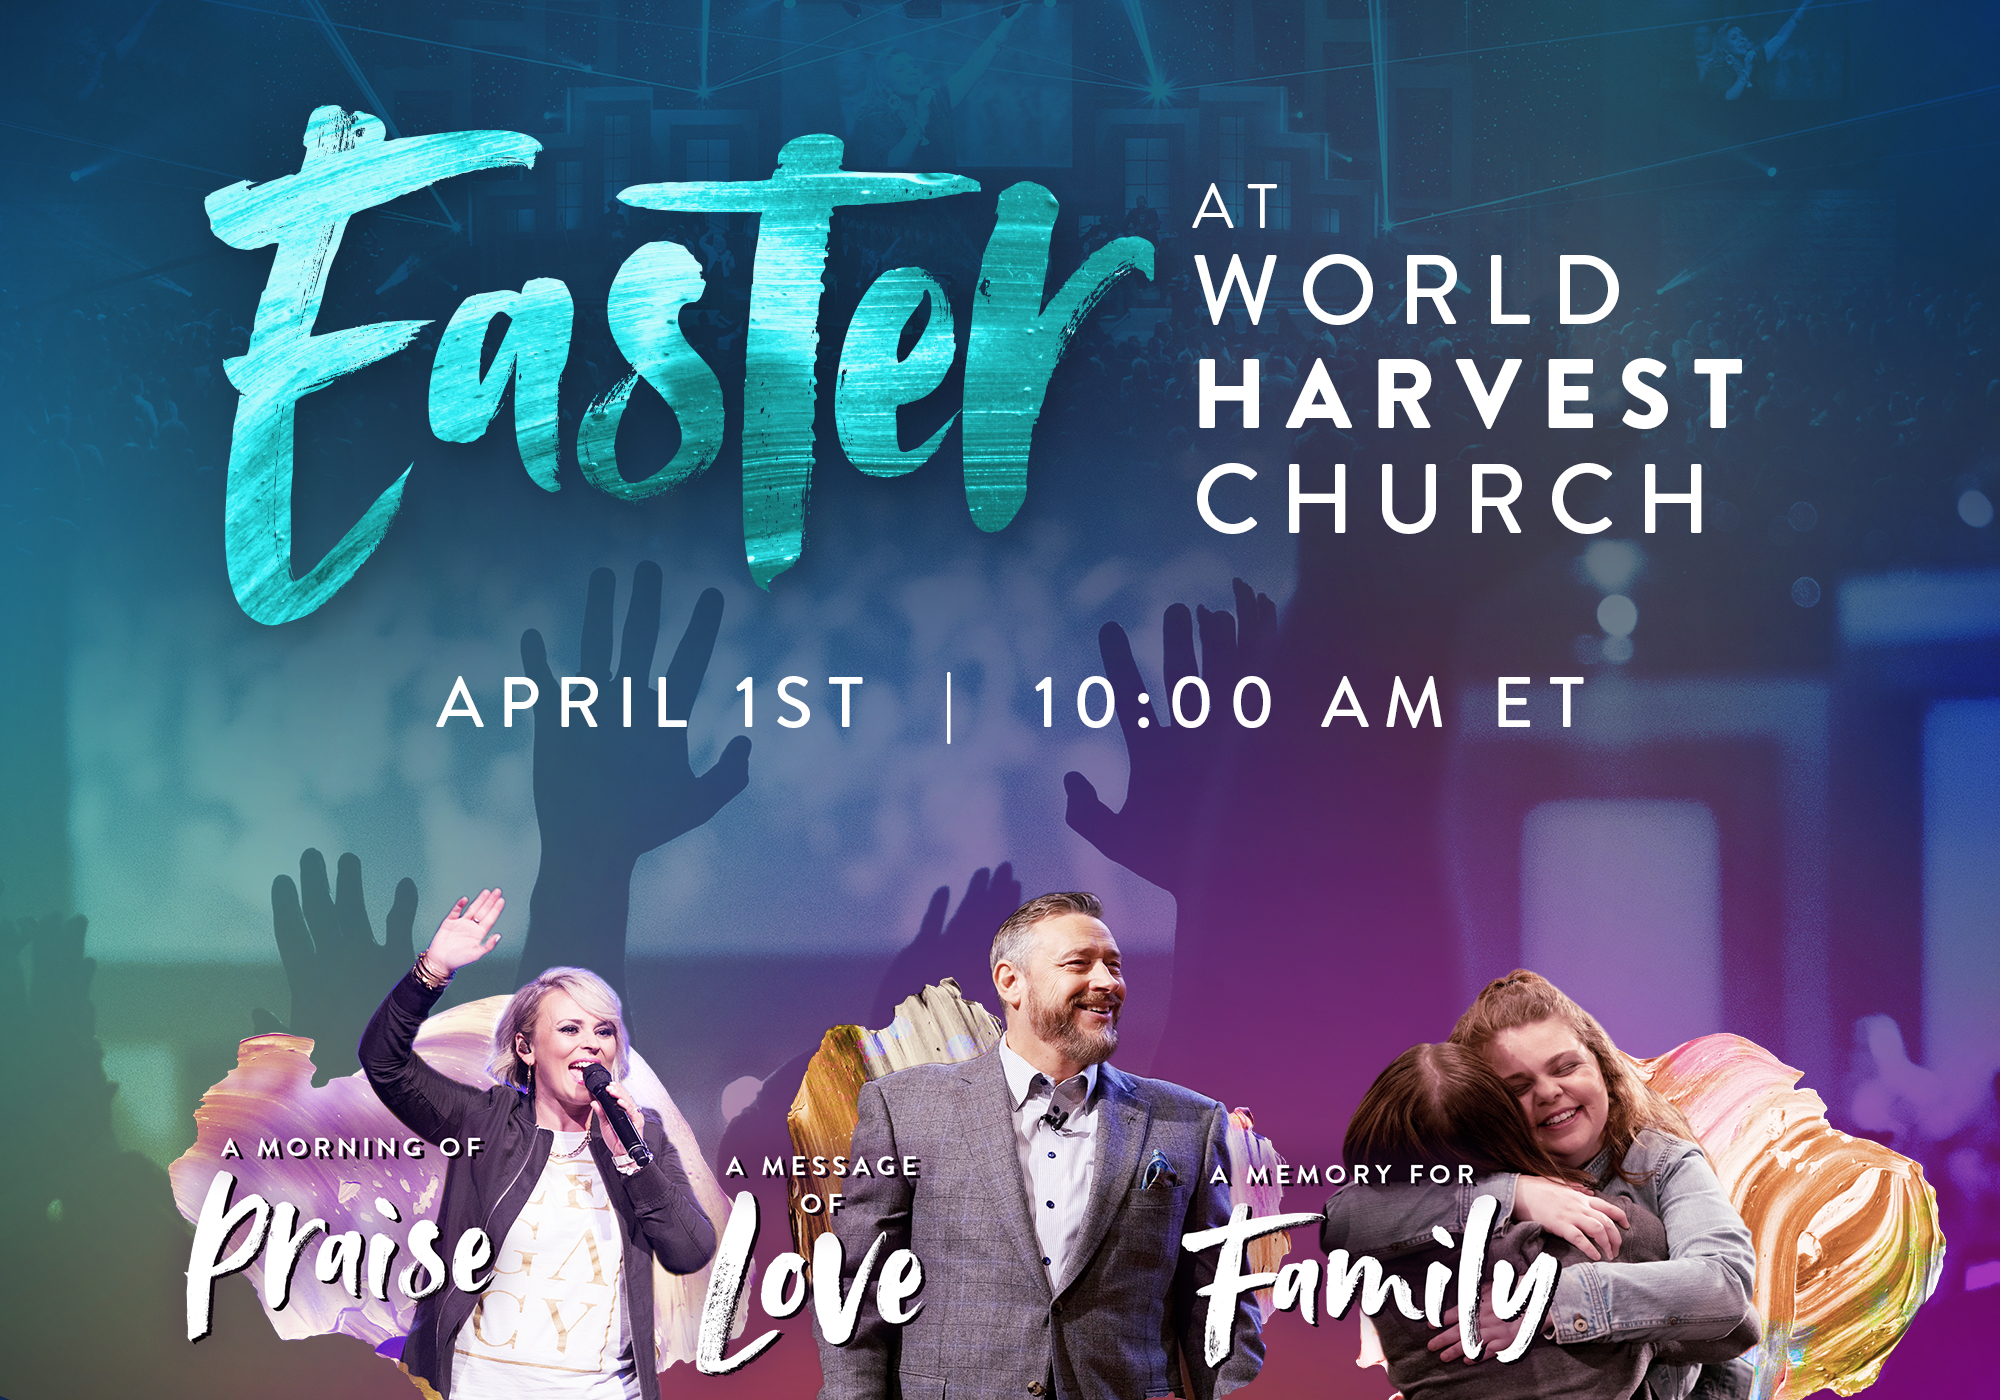 Easter at World Harvest Church | April 1st at 10:00 AM Eastern Time | A Morning of Praise, A Message of Love, A Memory for Family